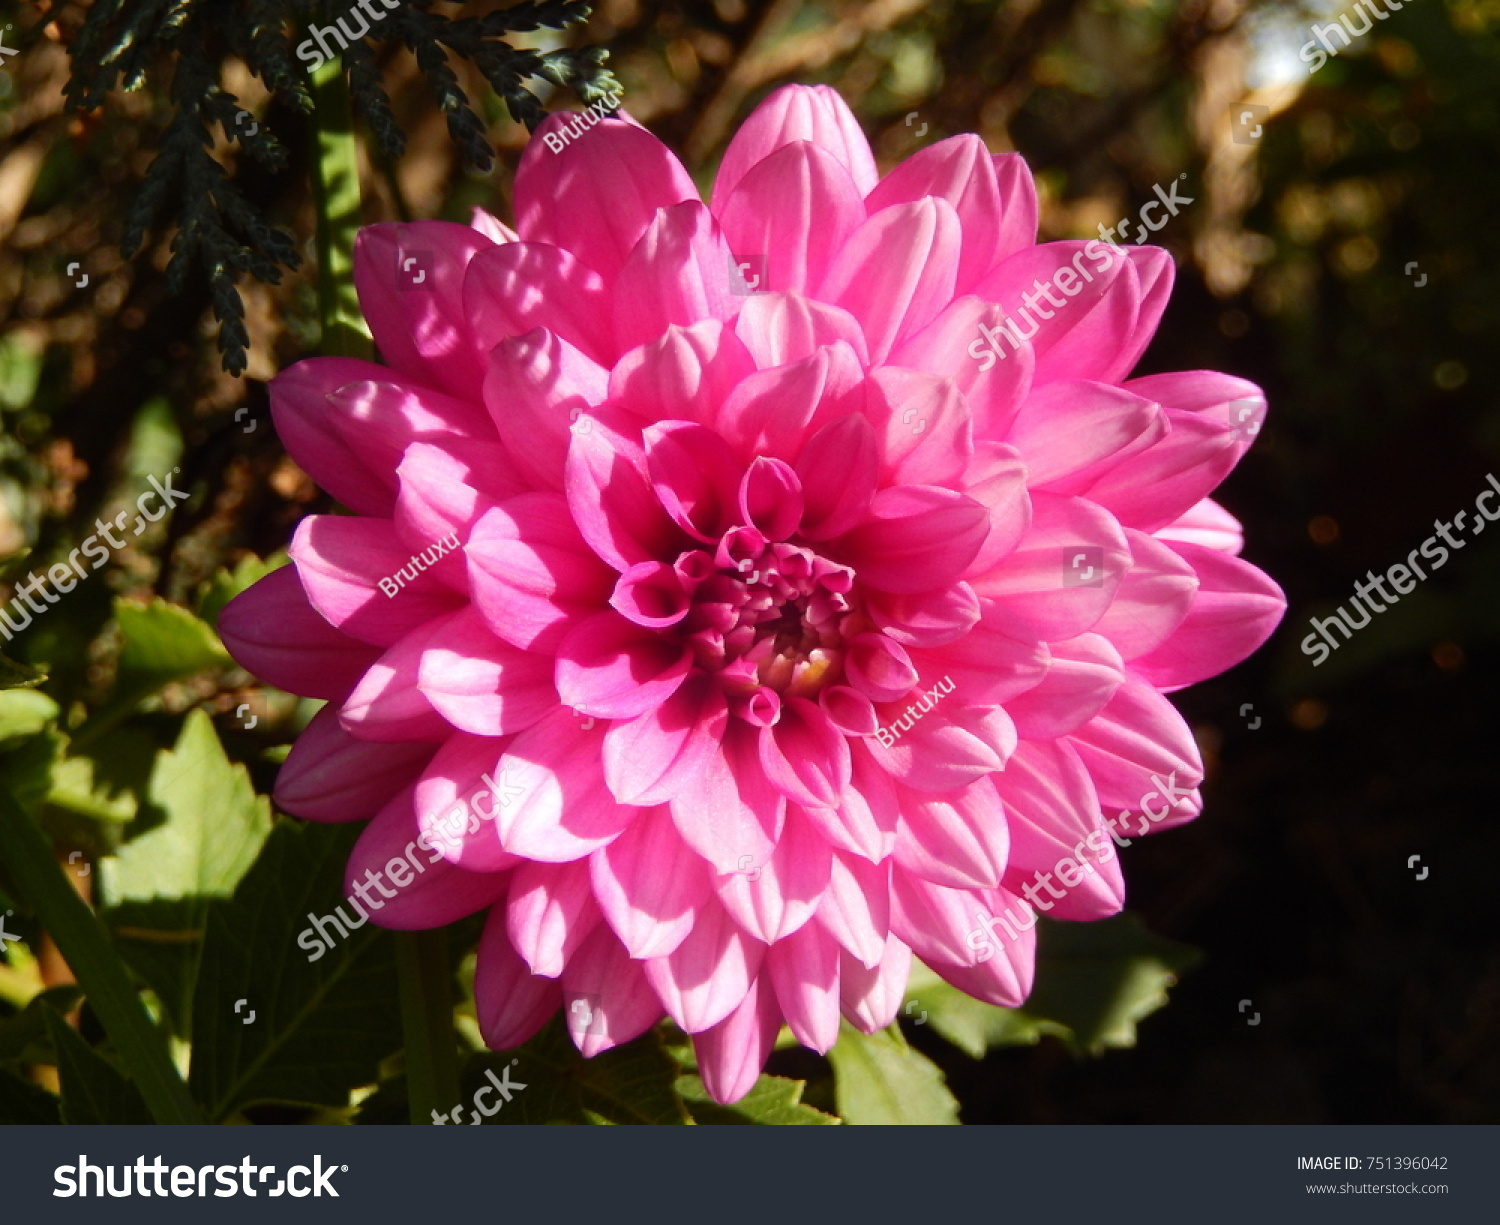 Very beautiful flowers stock photo edit now 751396042 shutterstock very beautiful flowers izmirmasajfo